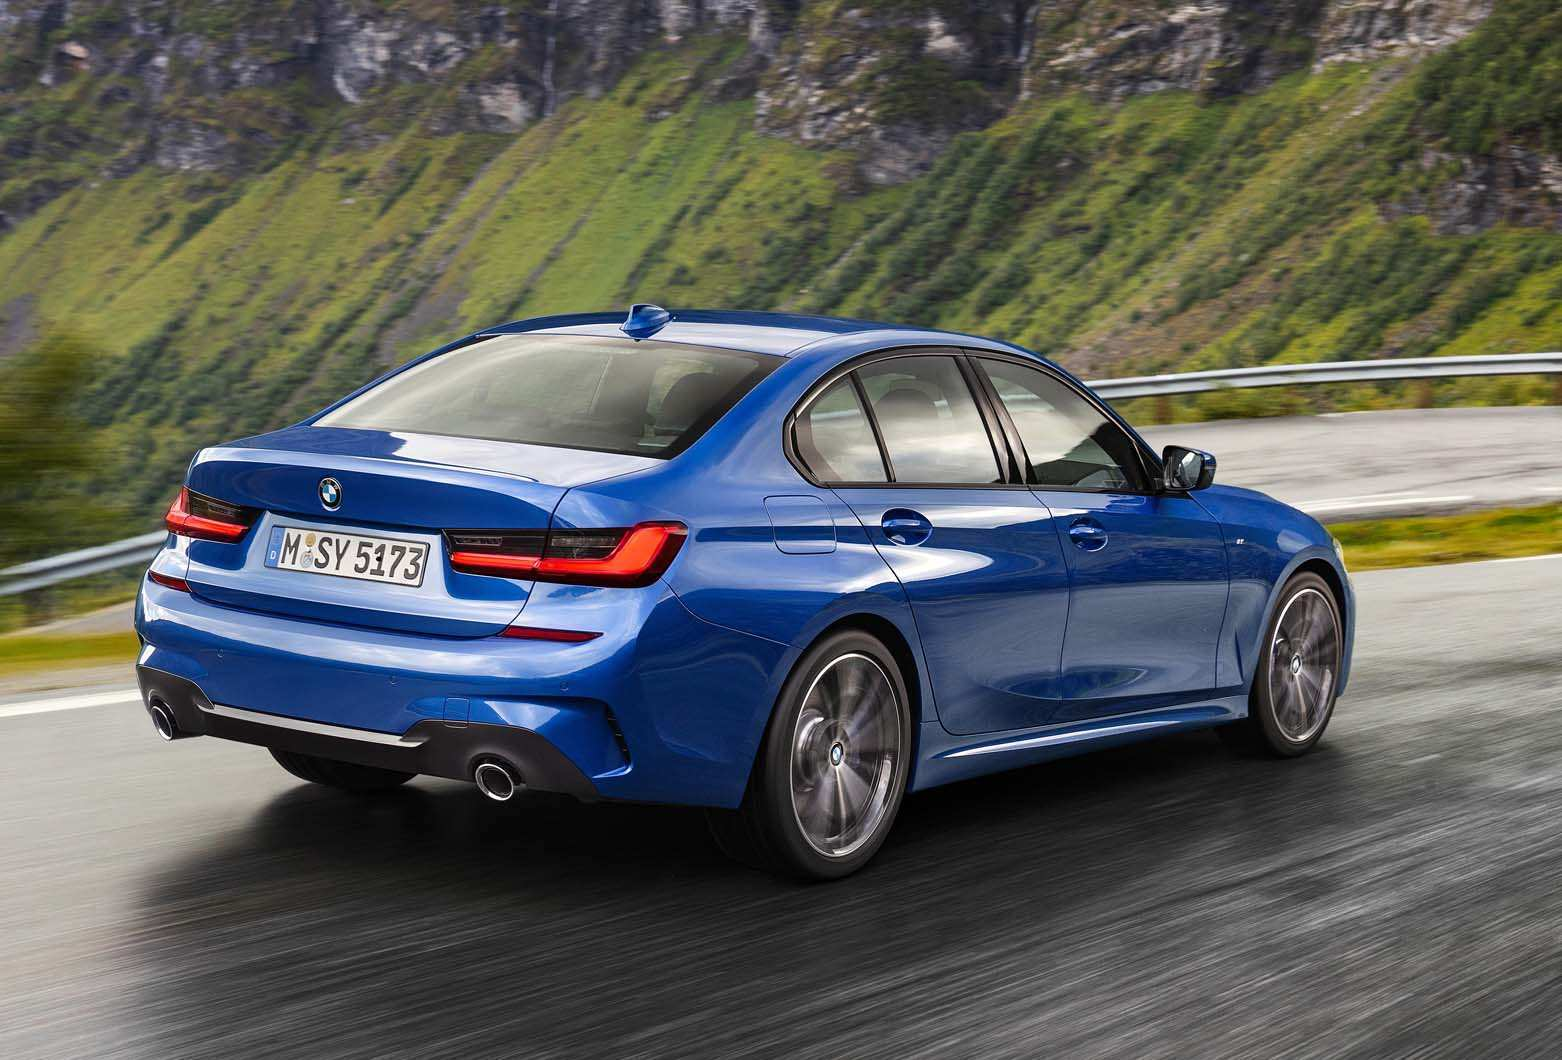 52 Best Review 2019 Bmw 3 Series G20 Model by 2019 Bmw 3 Series G20